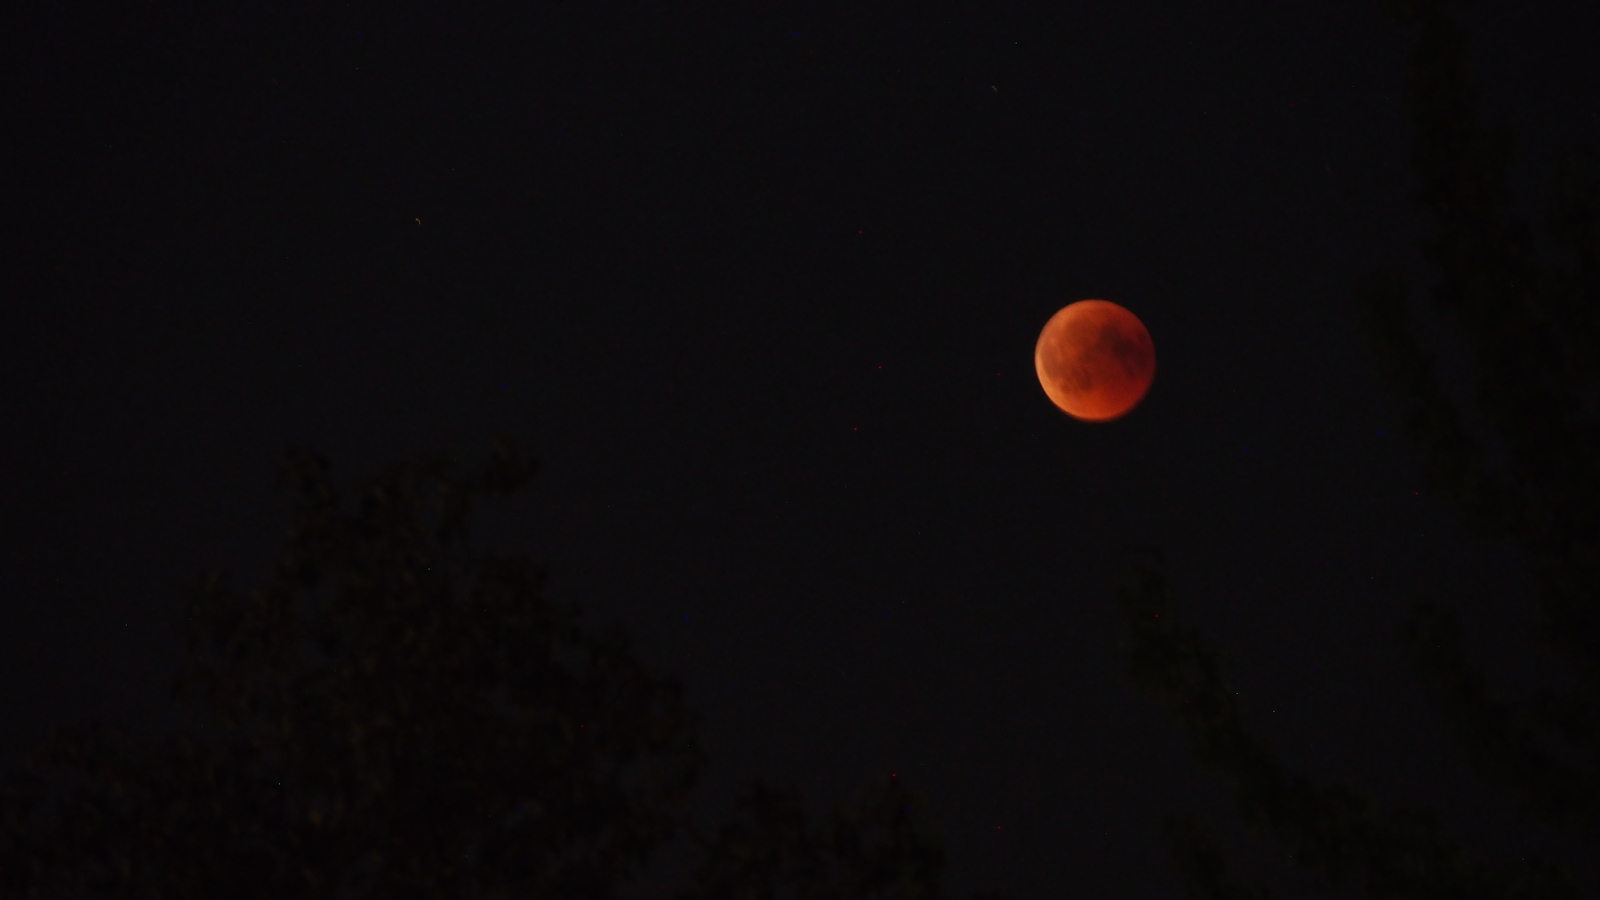 Red_Moon_27-7-2018_Nijmegen_The_Netherlands.JPG